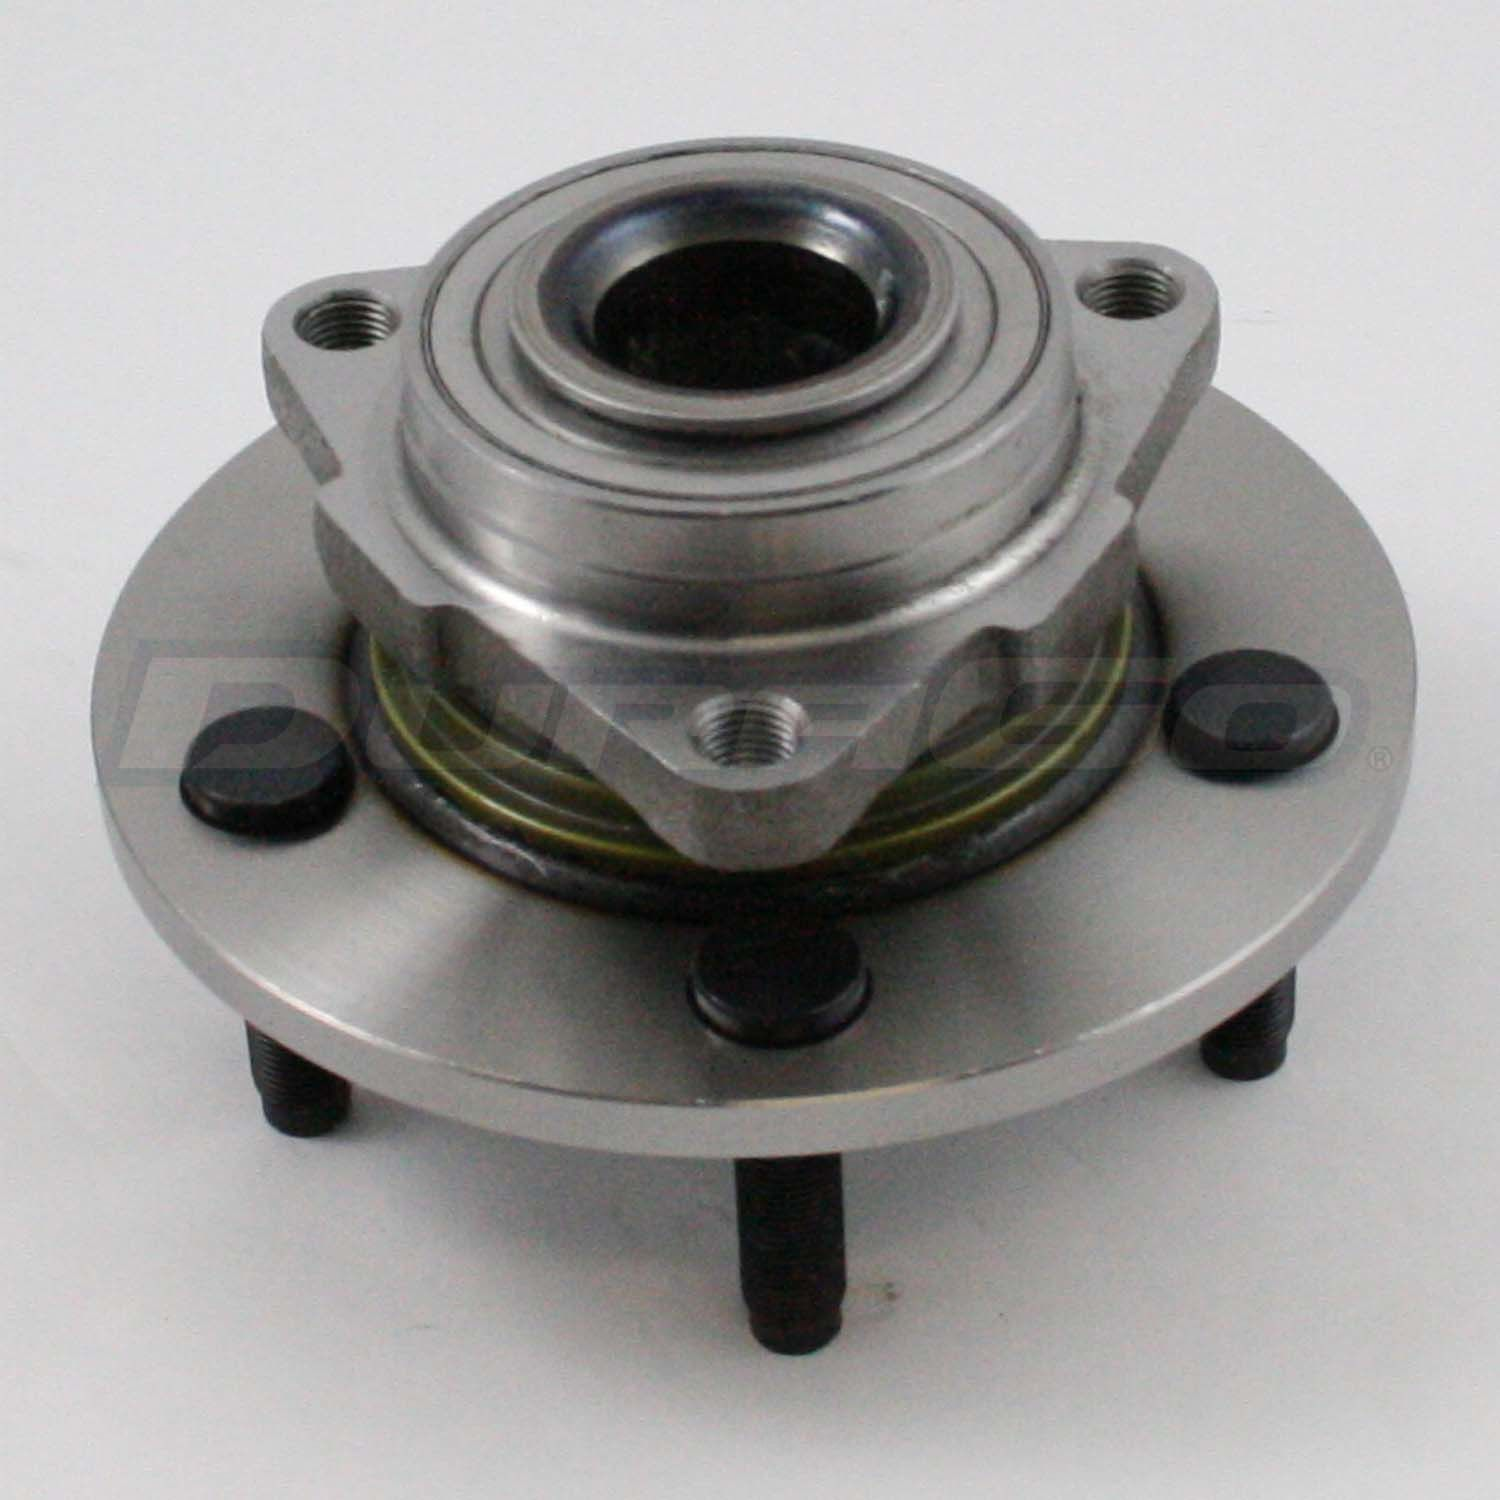 DURAGO - Axle Bearing and Hub Assembly - D48 295-15072